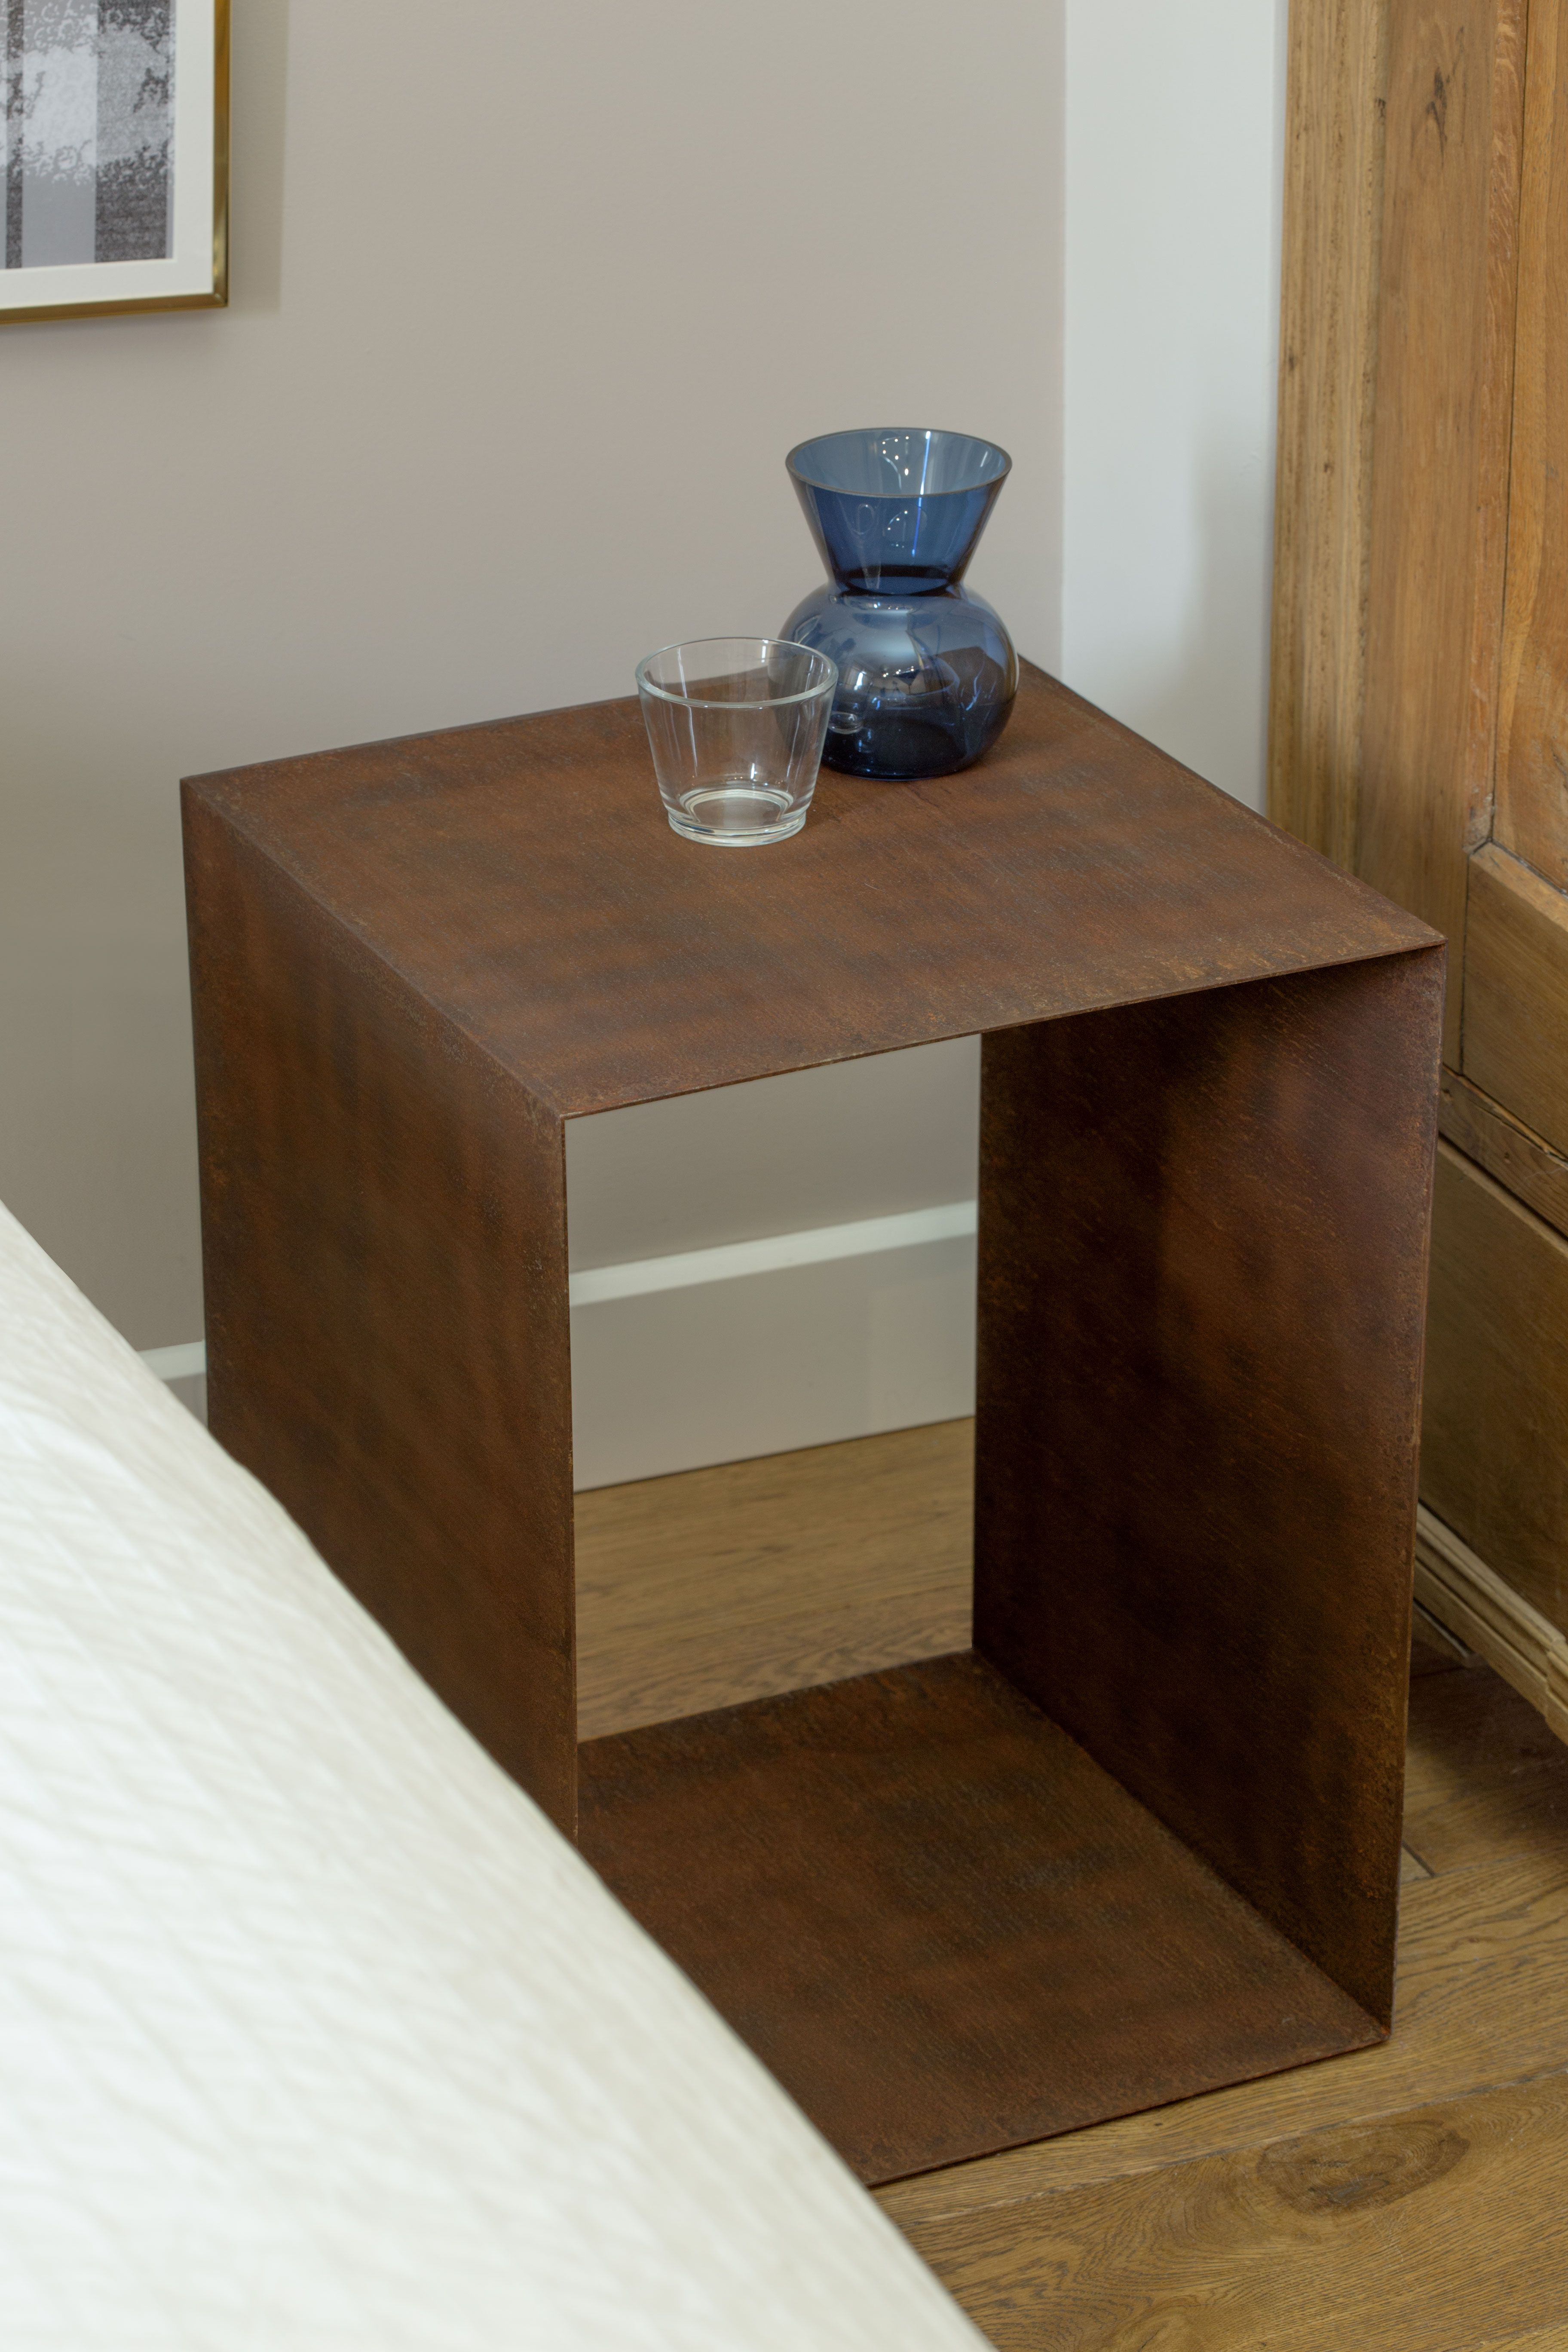 The Rusted Bedside Table From The U201cSteel Your Heartu201d Collection Is A Unique  Piece